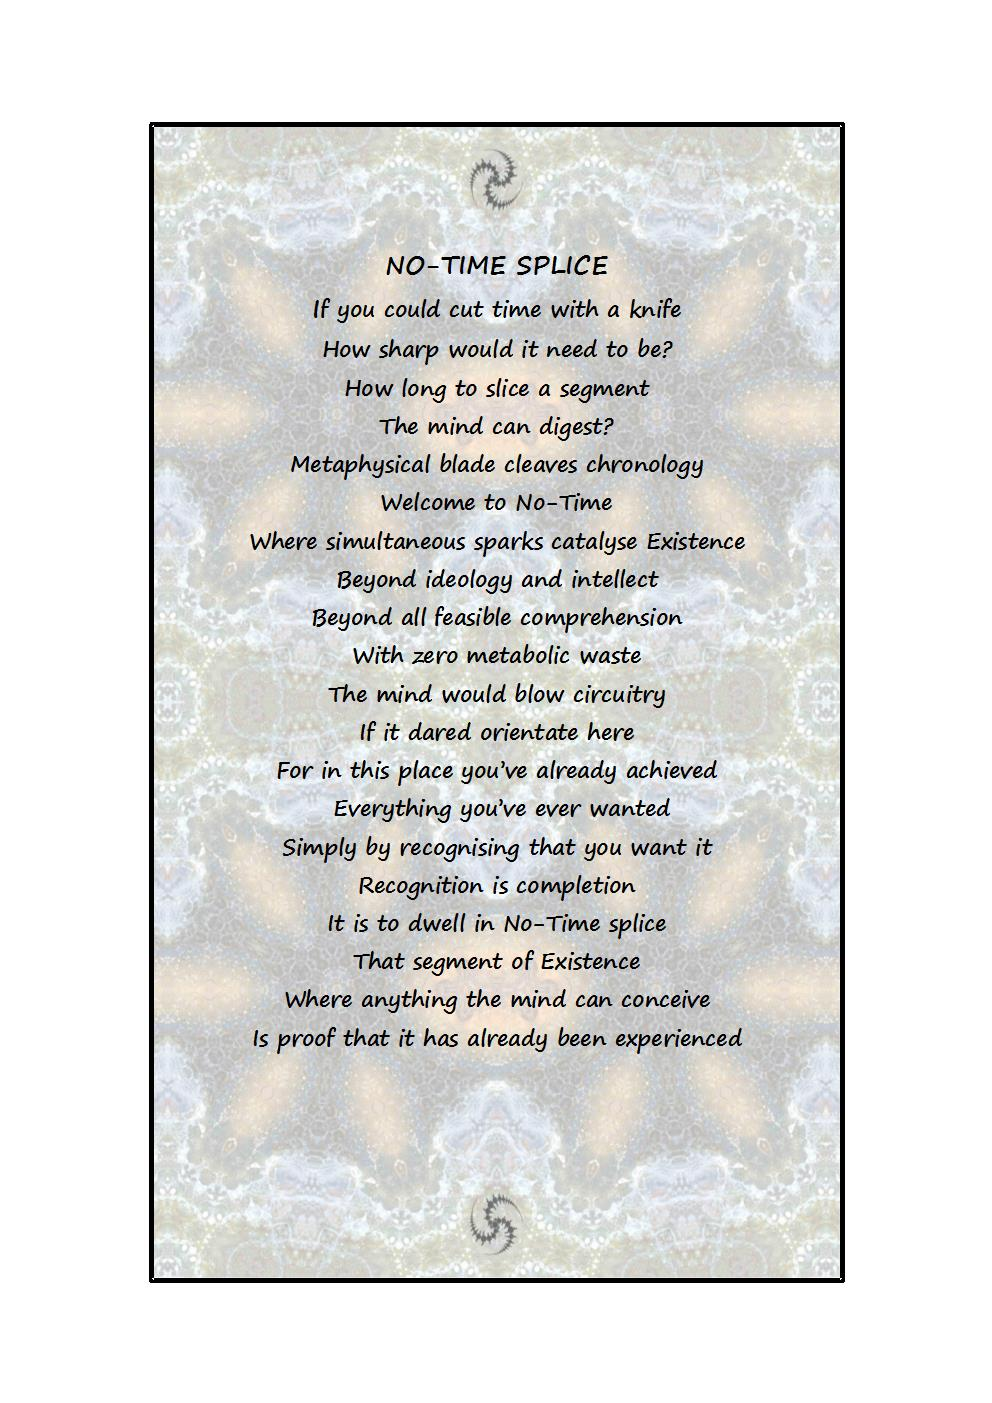 Poem comes printed on A4-sized paper, unframed